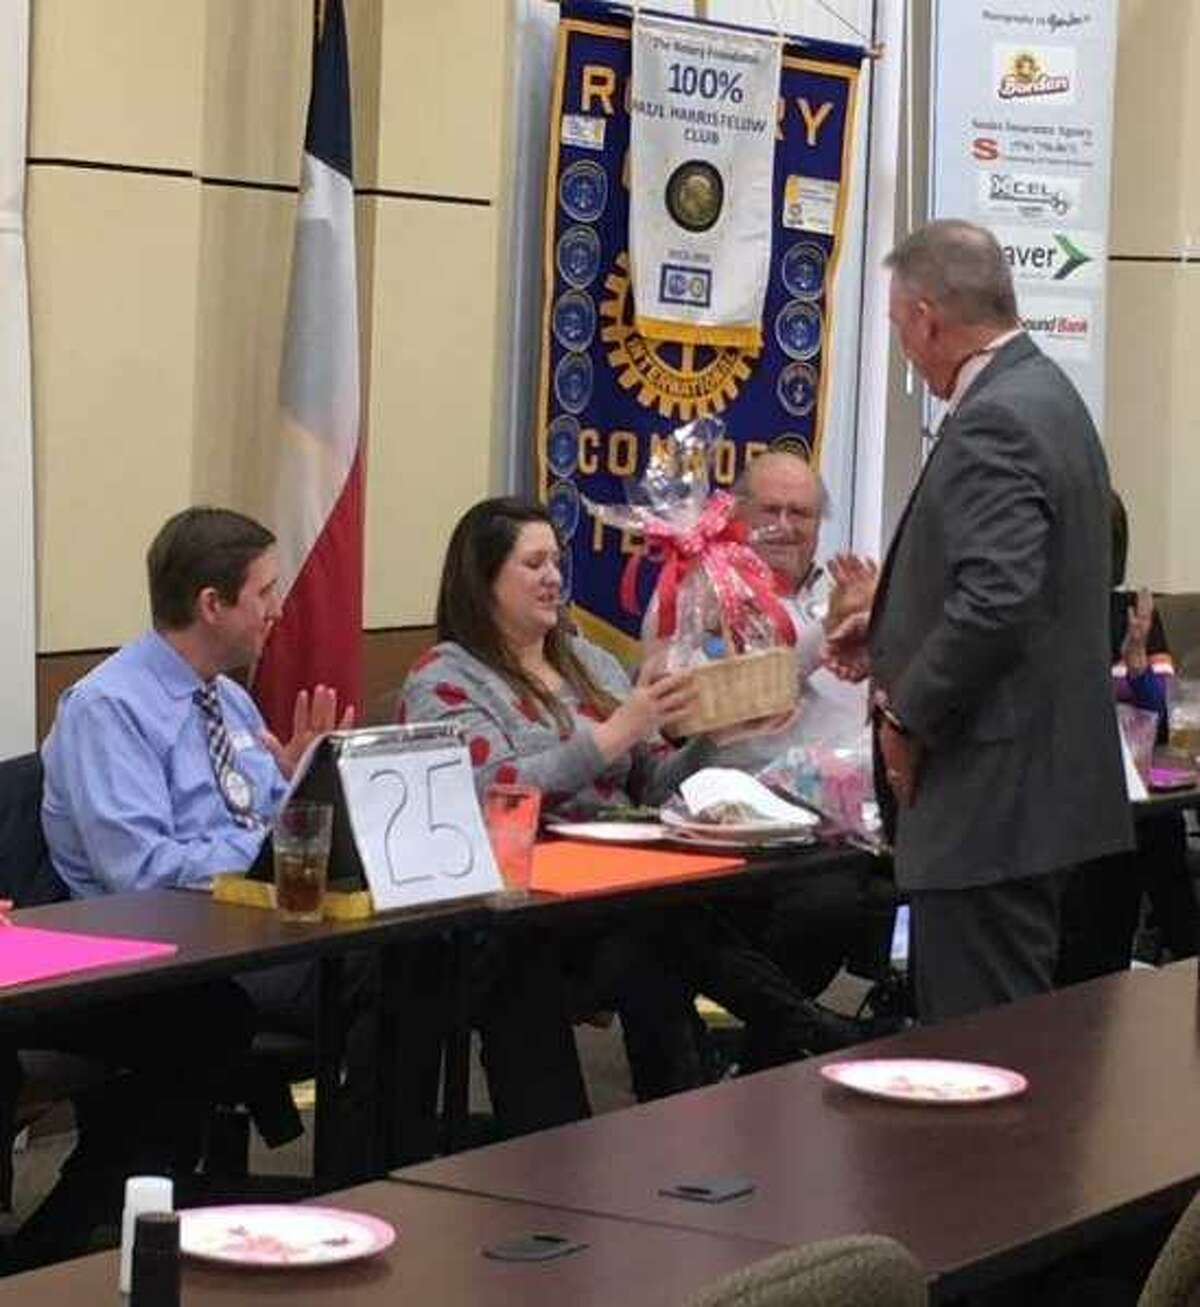 """Master of Ceremonies Denny Buckalew, with his back to the camera, presents a gift basket to Rotarian Nick Davis and his wife Kara after they won the """"Not So Newlywed Game"""" at last week's Rotary Club of Conroe special Valentine's week meeting."""